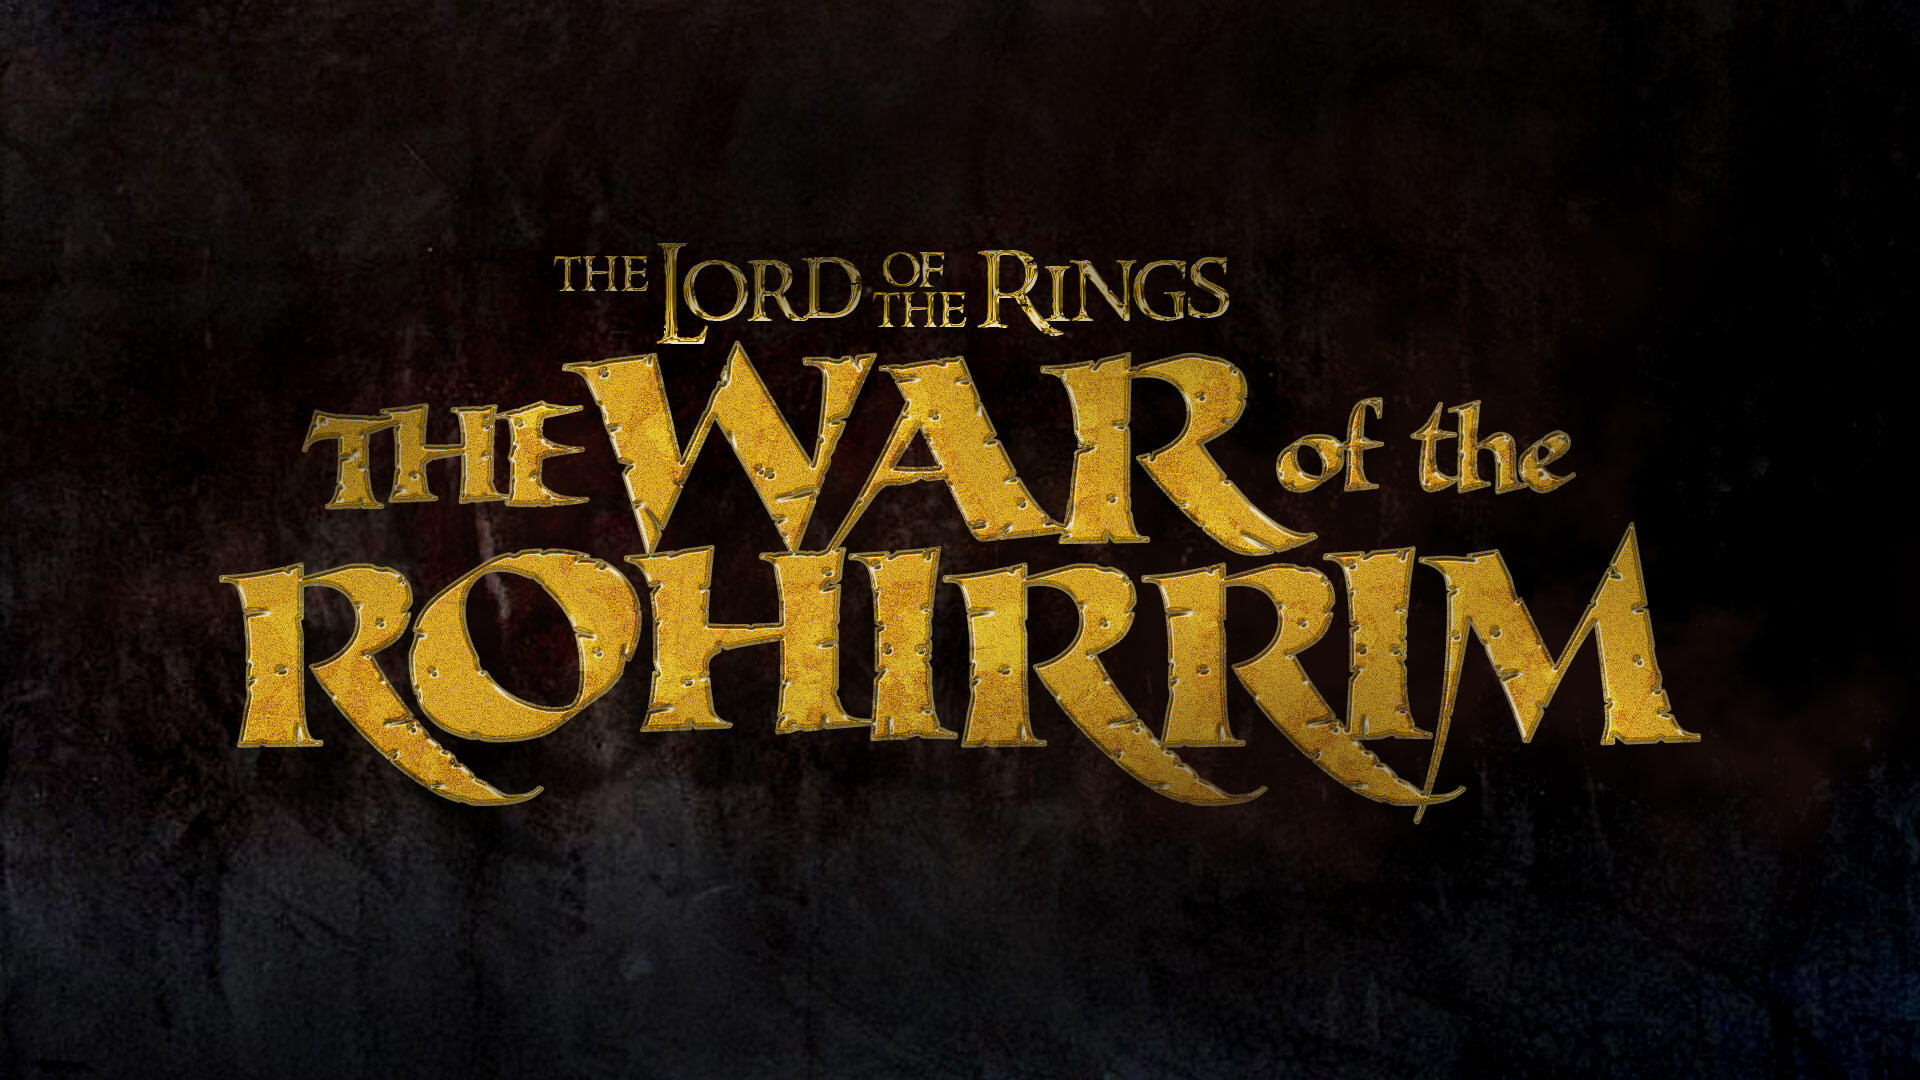 Is Lord of the Rings: The War of the Rohirrim Canon in the Tolkienverse